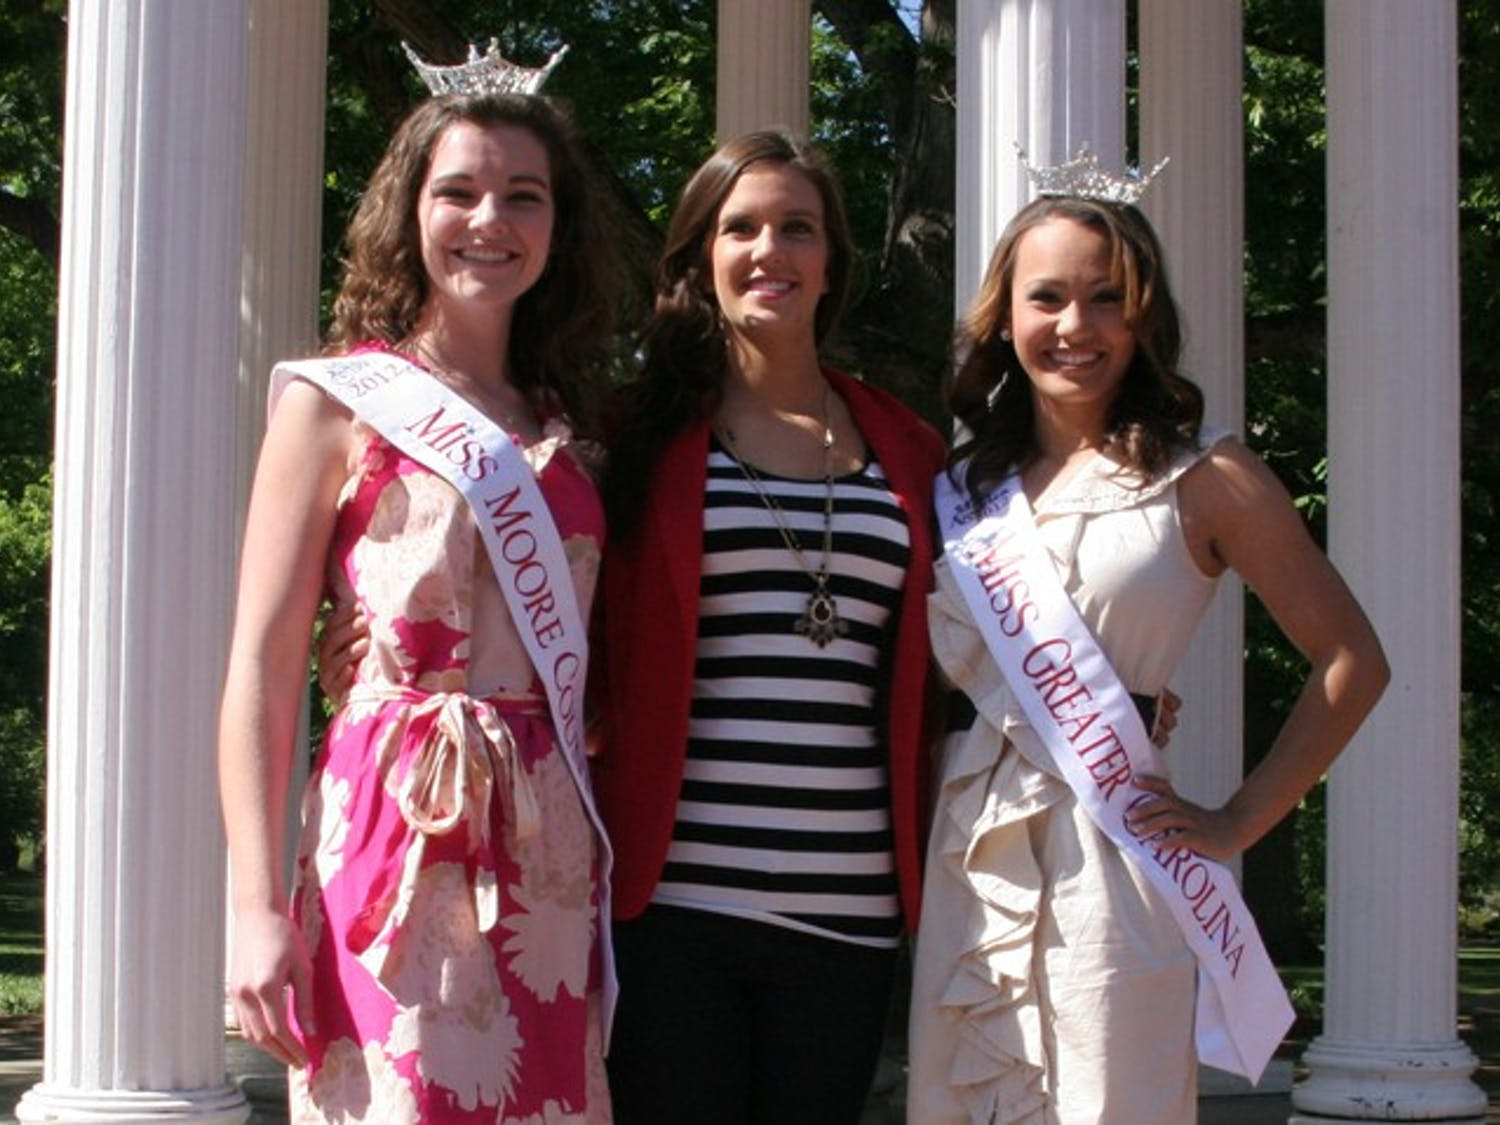 Miss NC Pageant contestants in front of the Old Well. Summer Hennings (pink dress), Dominque Alston (beige dress), Maddisson Sheppard (no crown or sash)